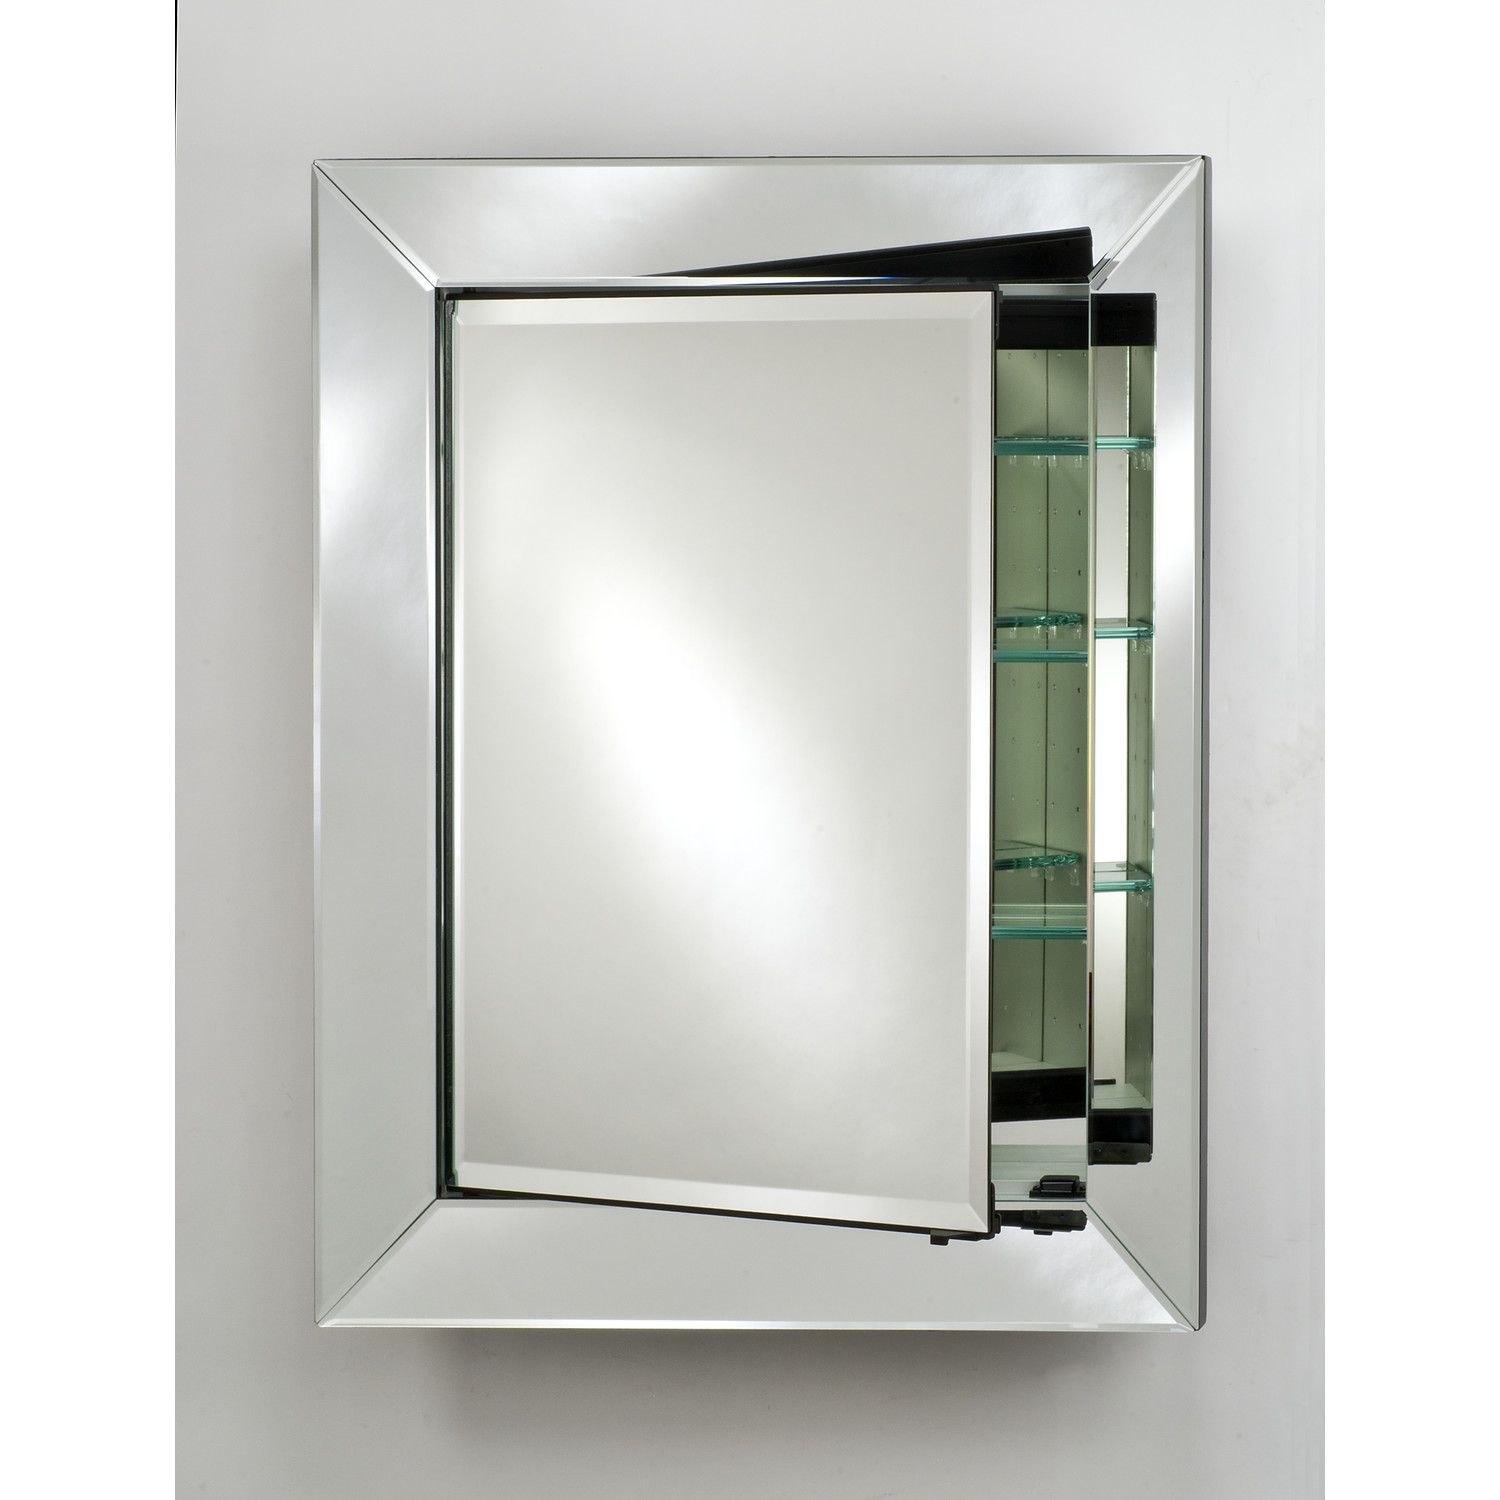 Luxury Wayfair Recessed Medicine Cabinet